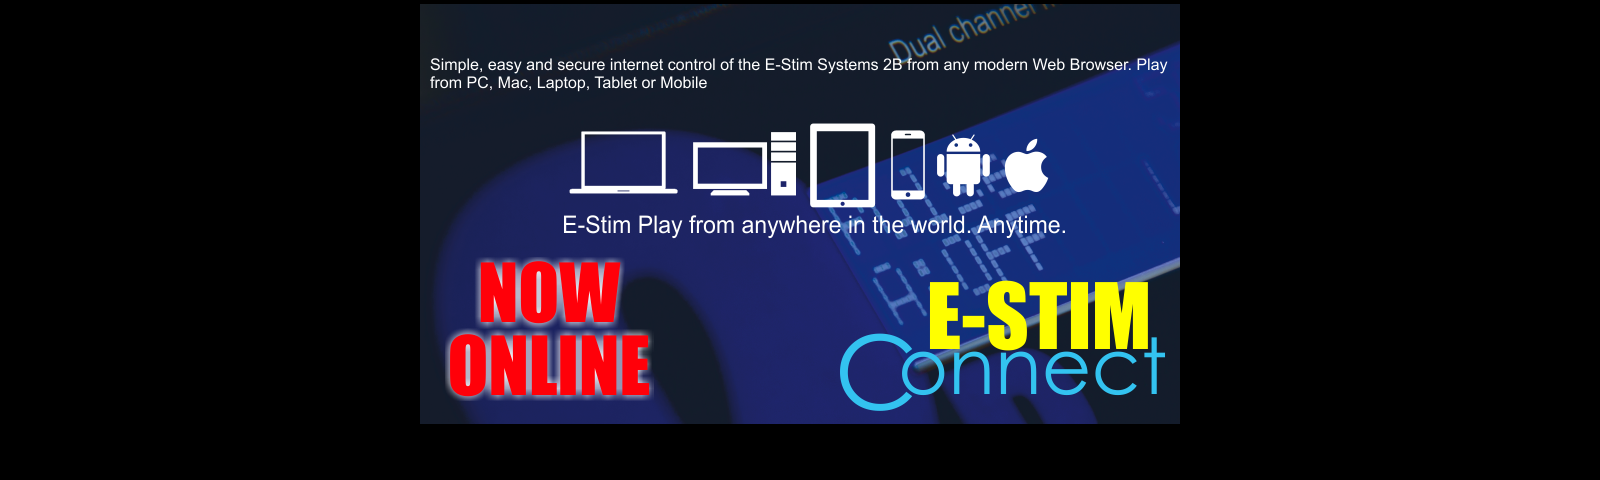 E-Stim Connect - E-Stim play across the web